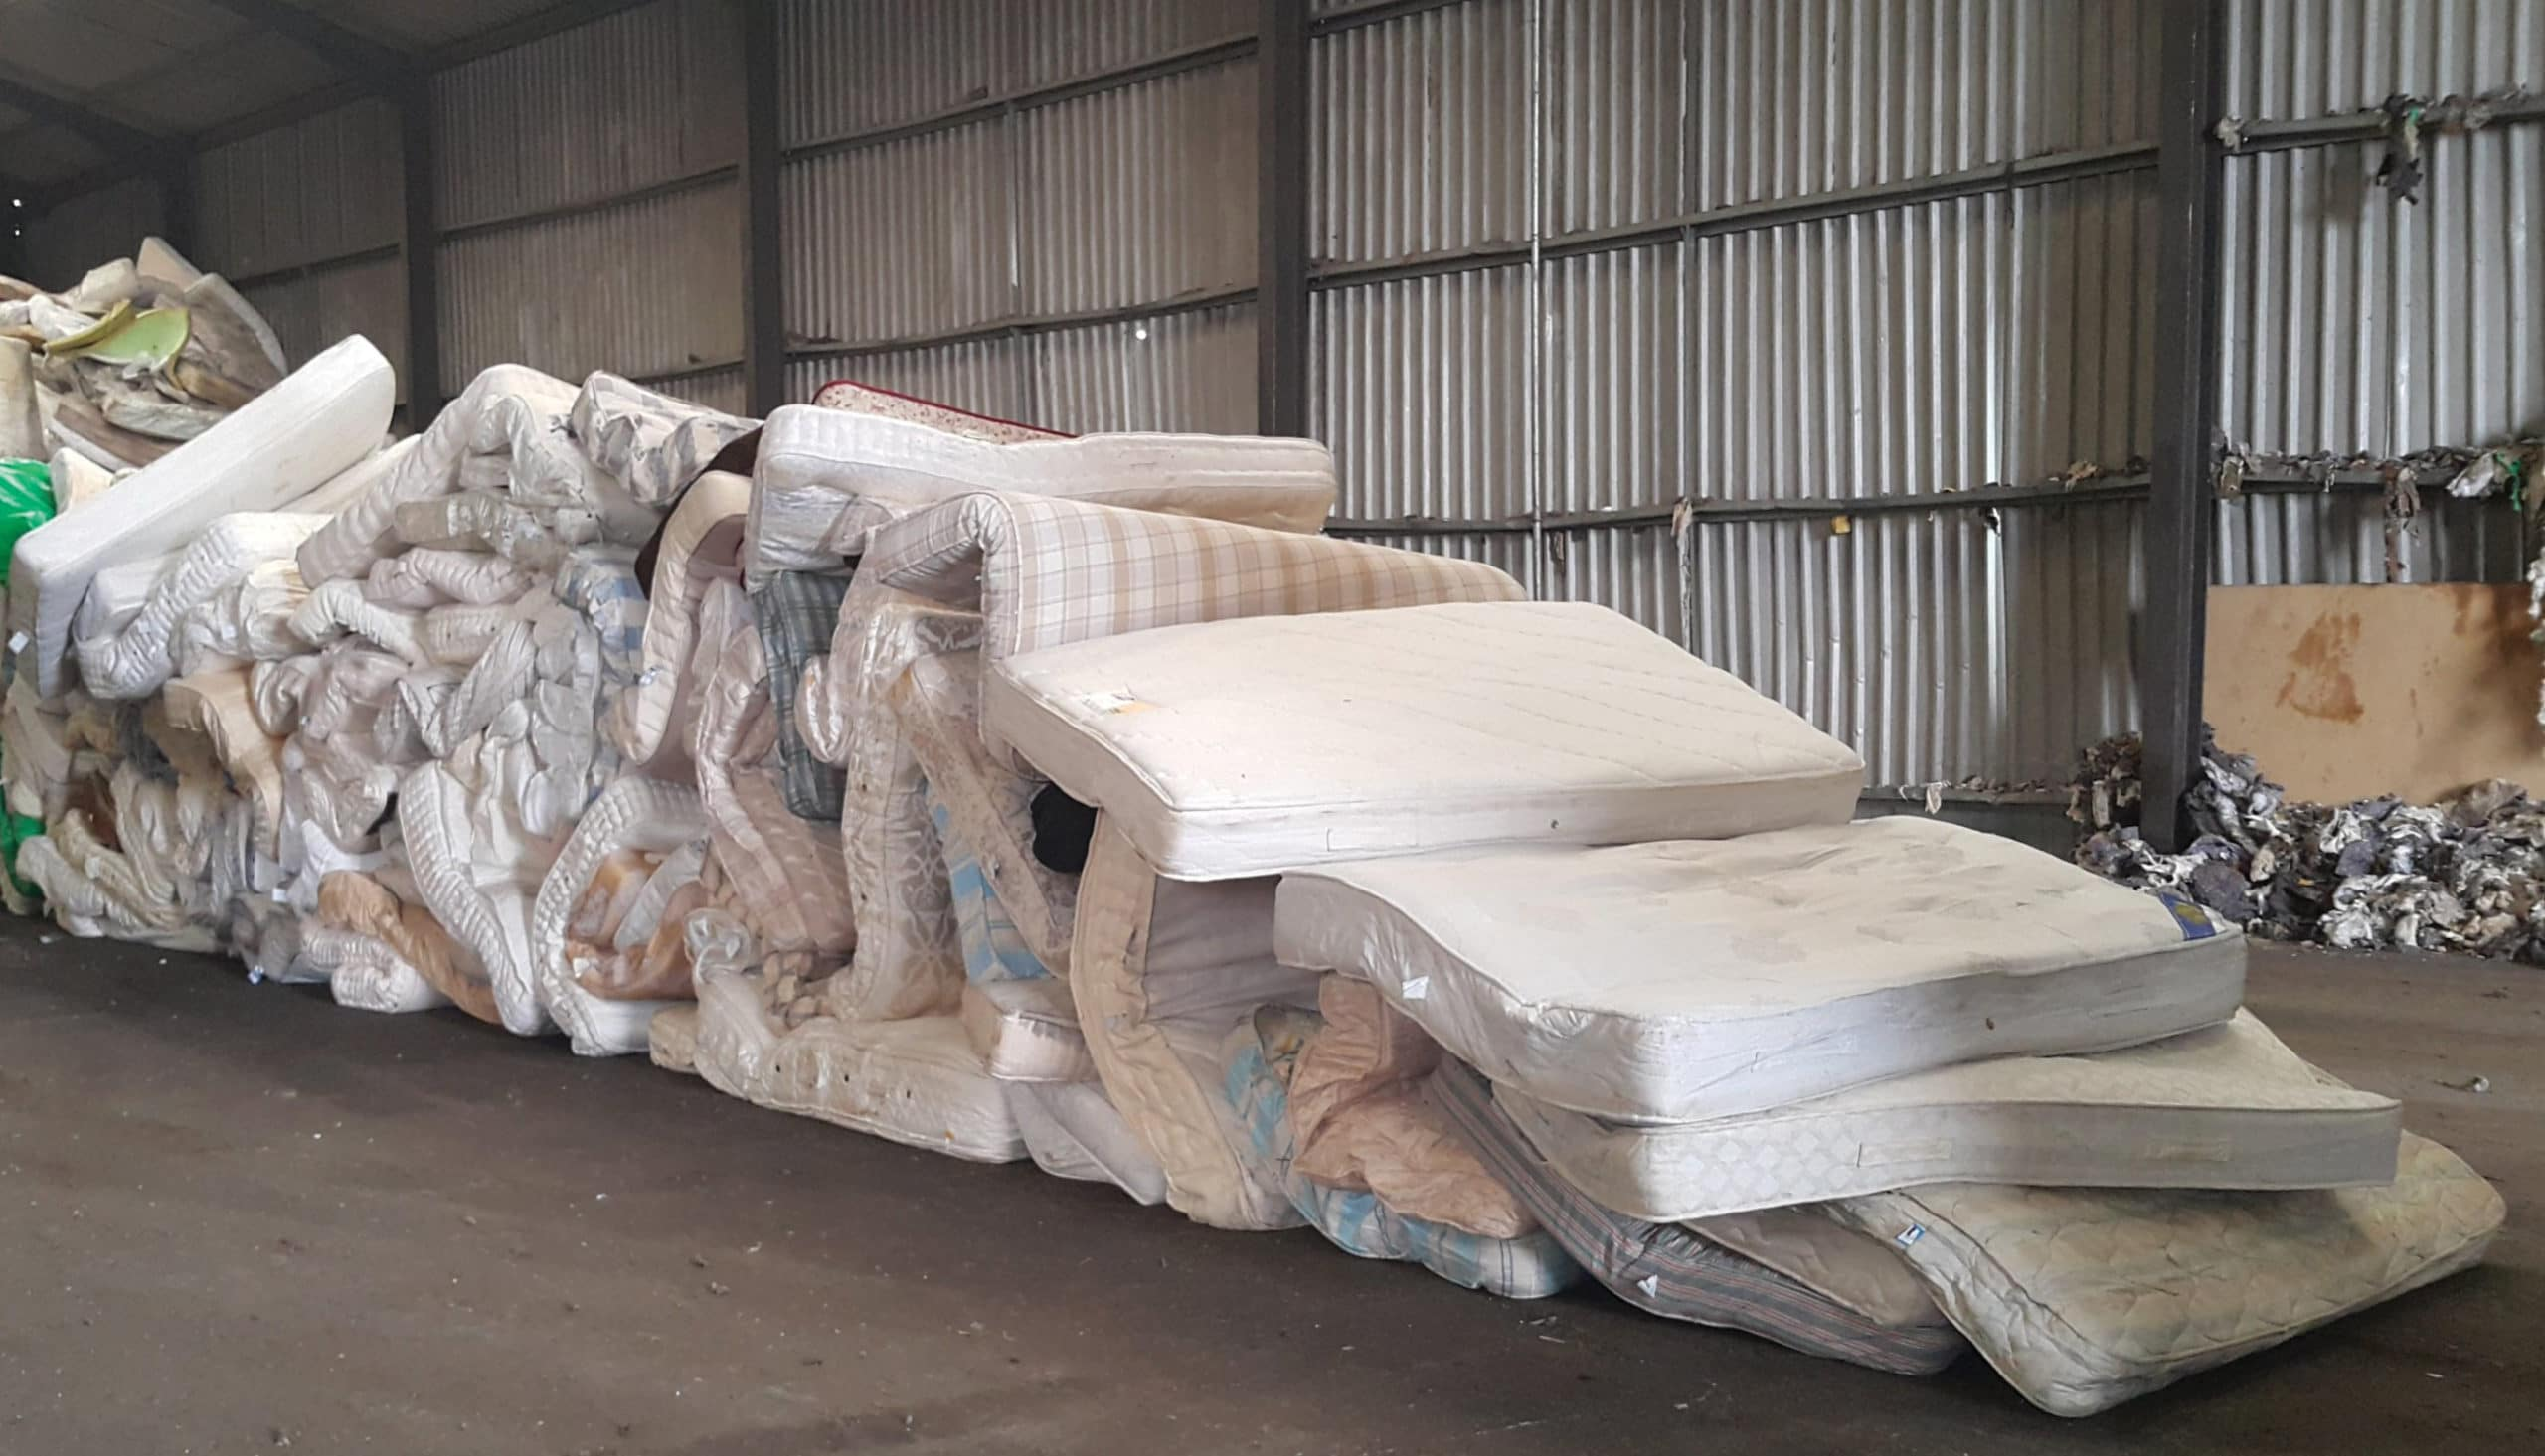 Mattress Recycling in Progress